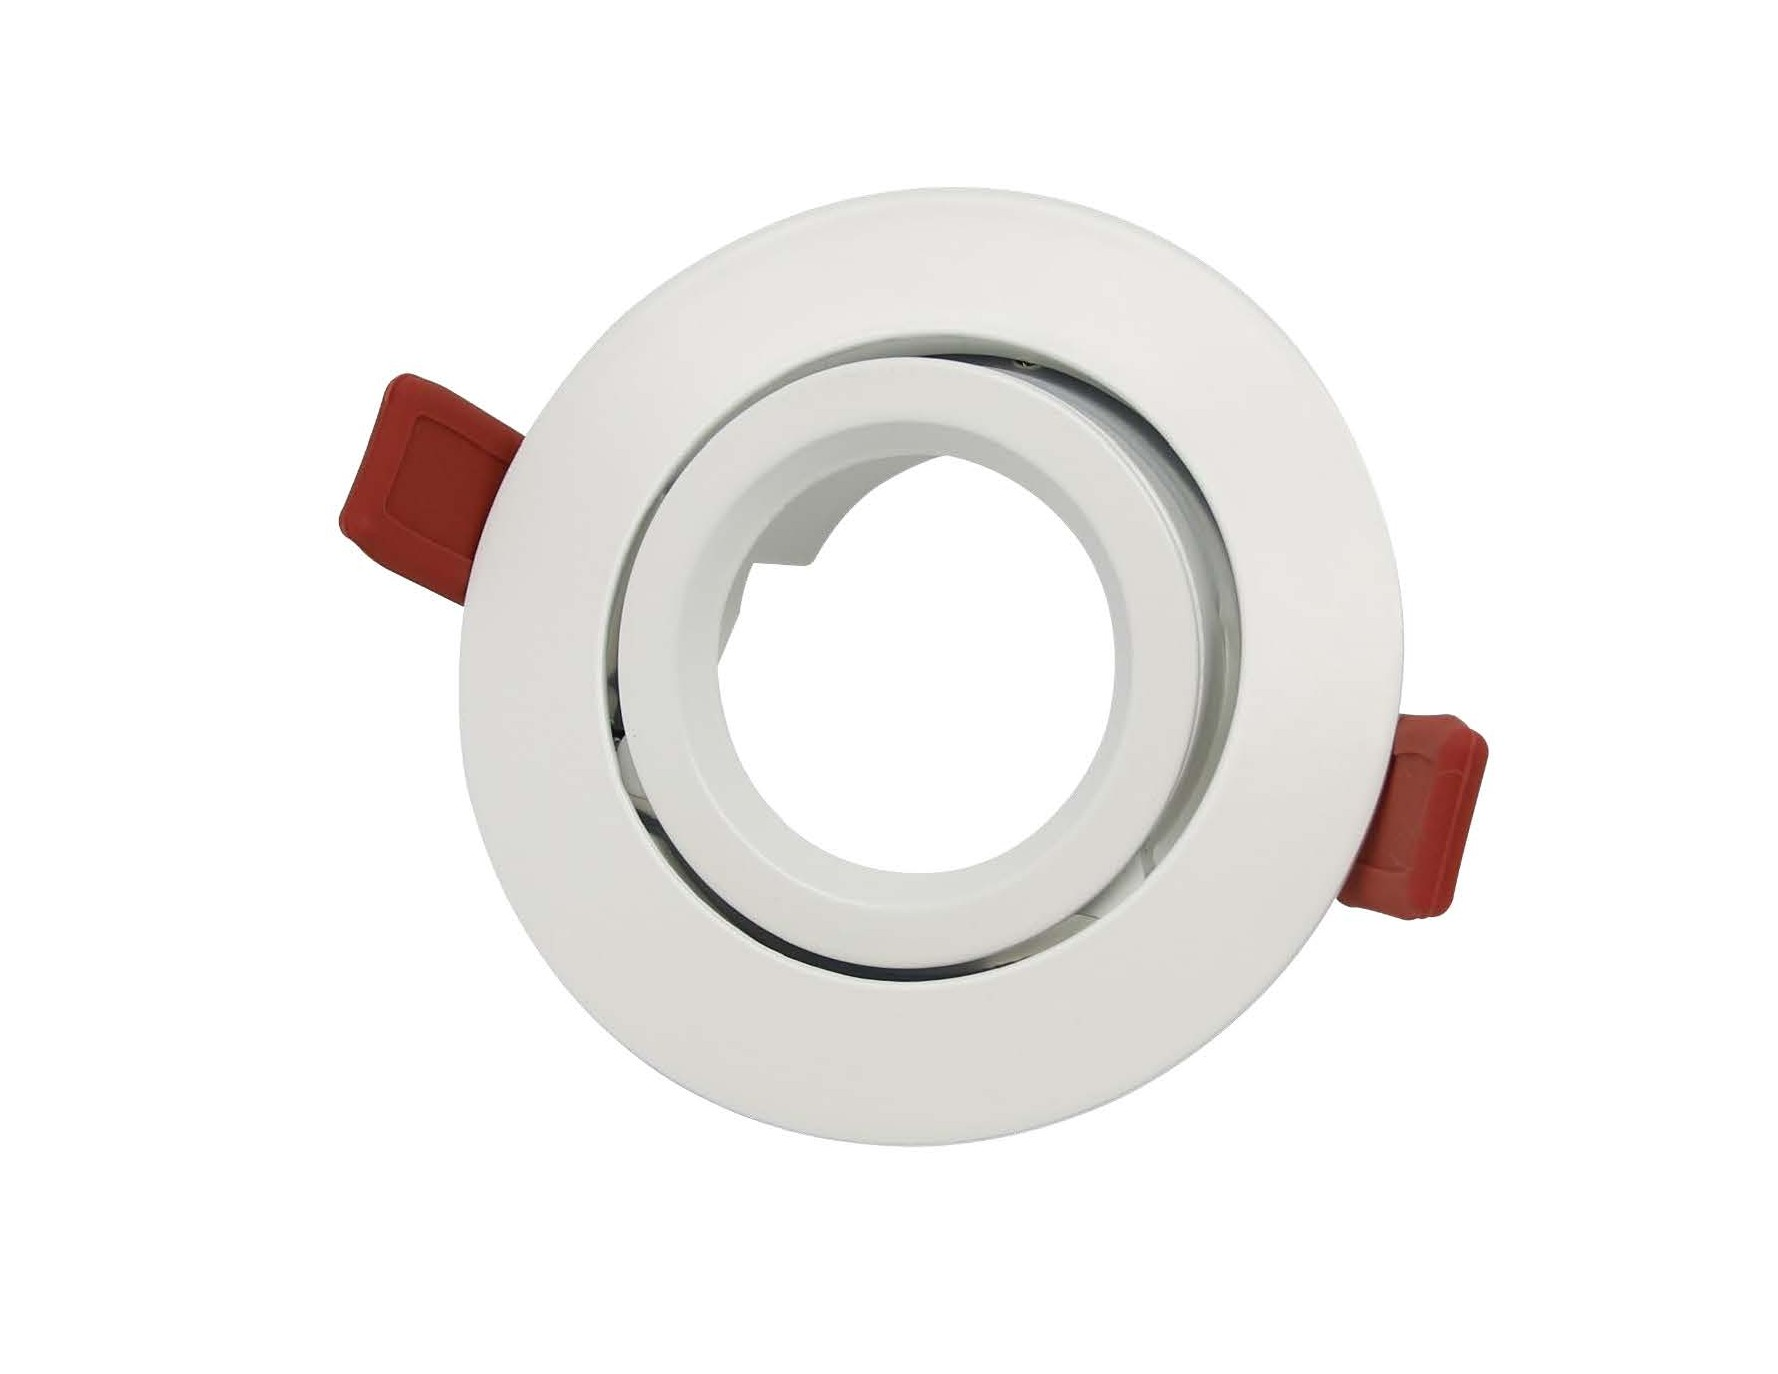 F28 round downlight frame